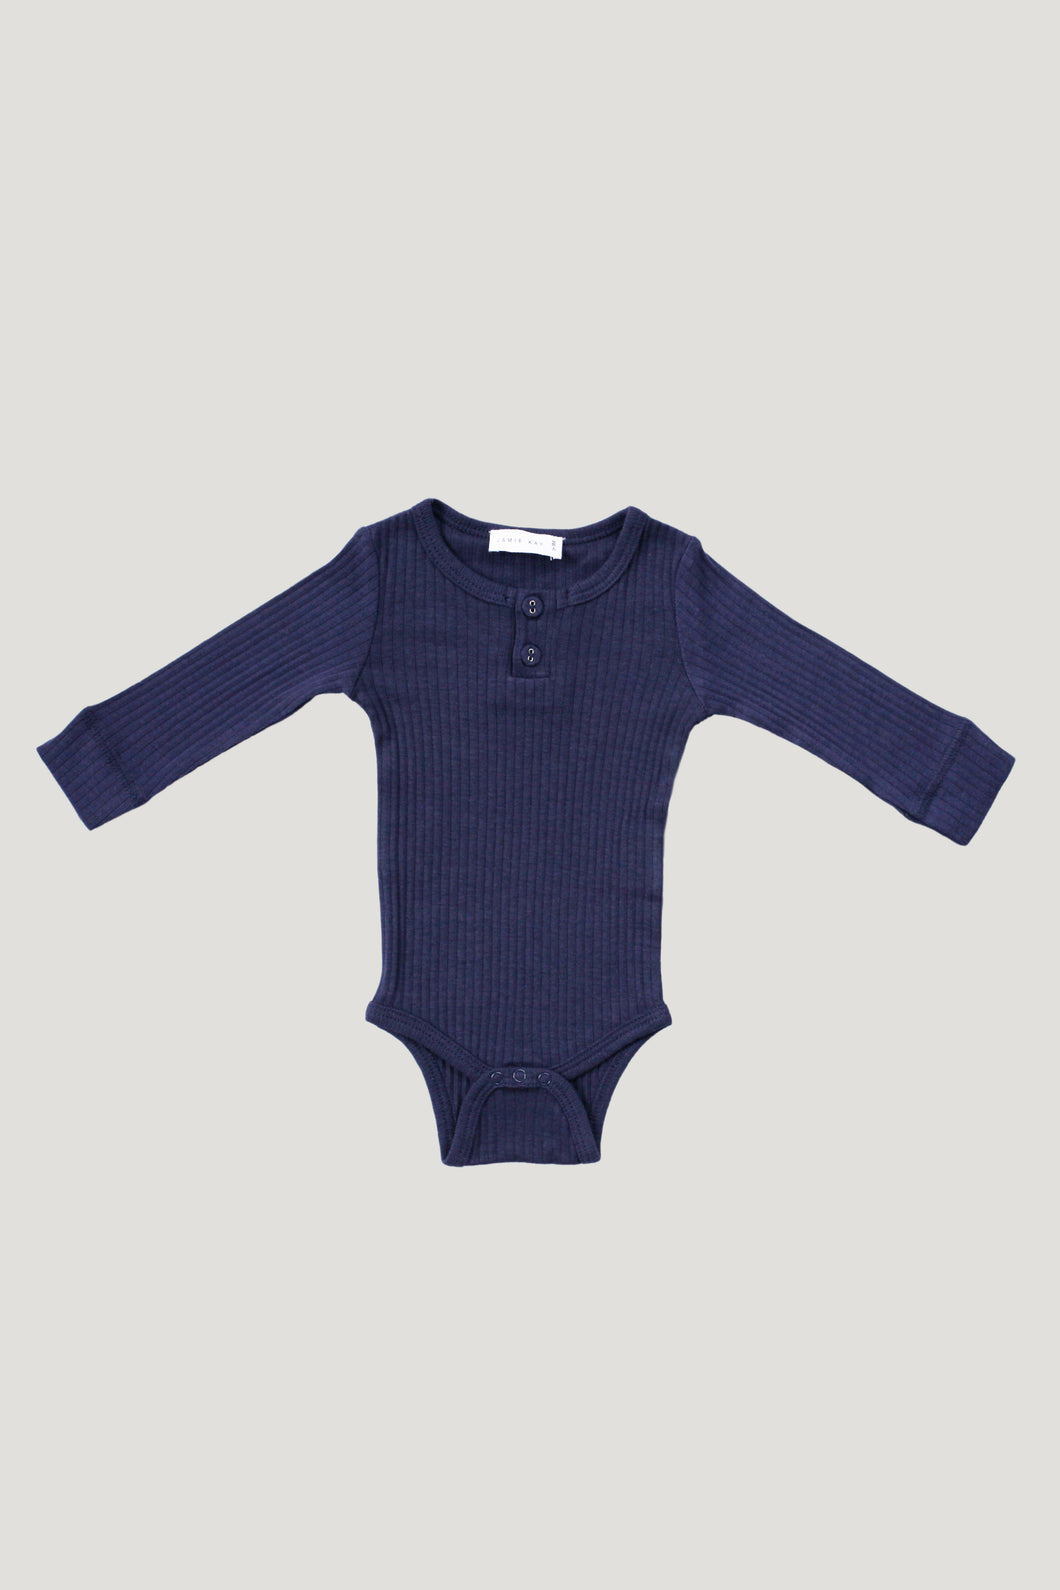 Jamie Kay bodysuit - navy (original fit)